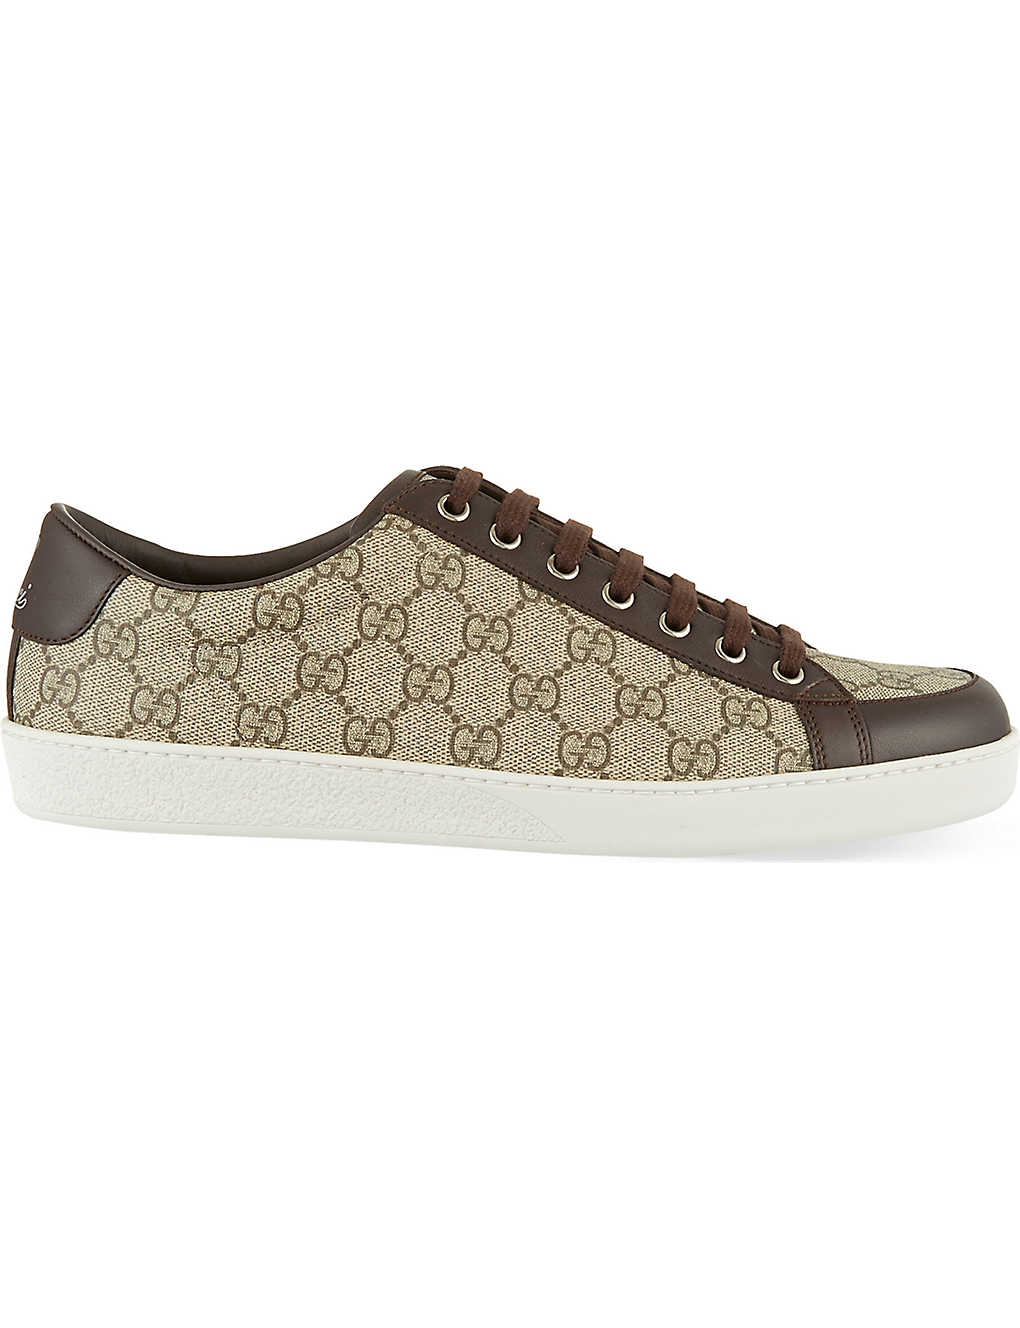 a01fe68c960 GUCCI - Brooklyn GG low top trainers